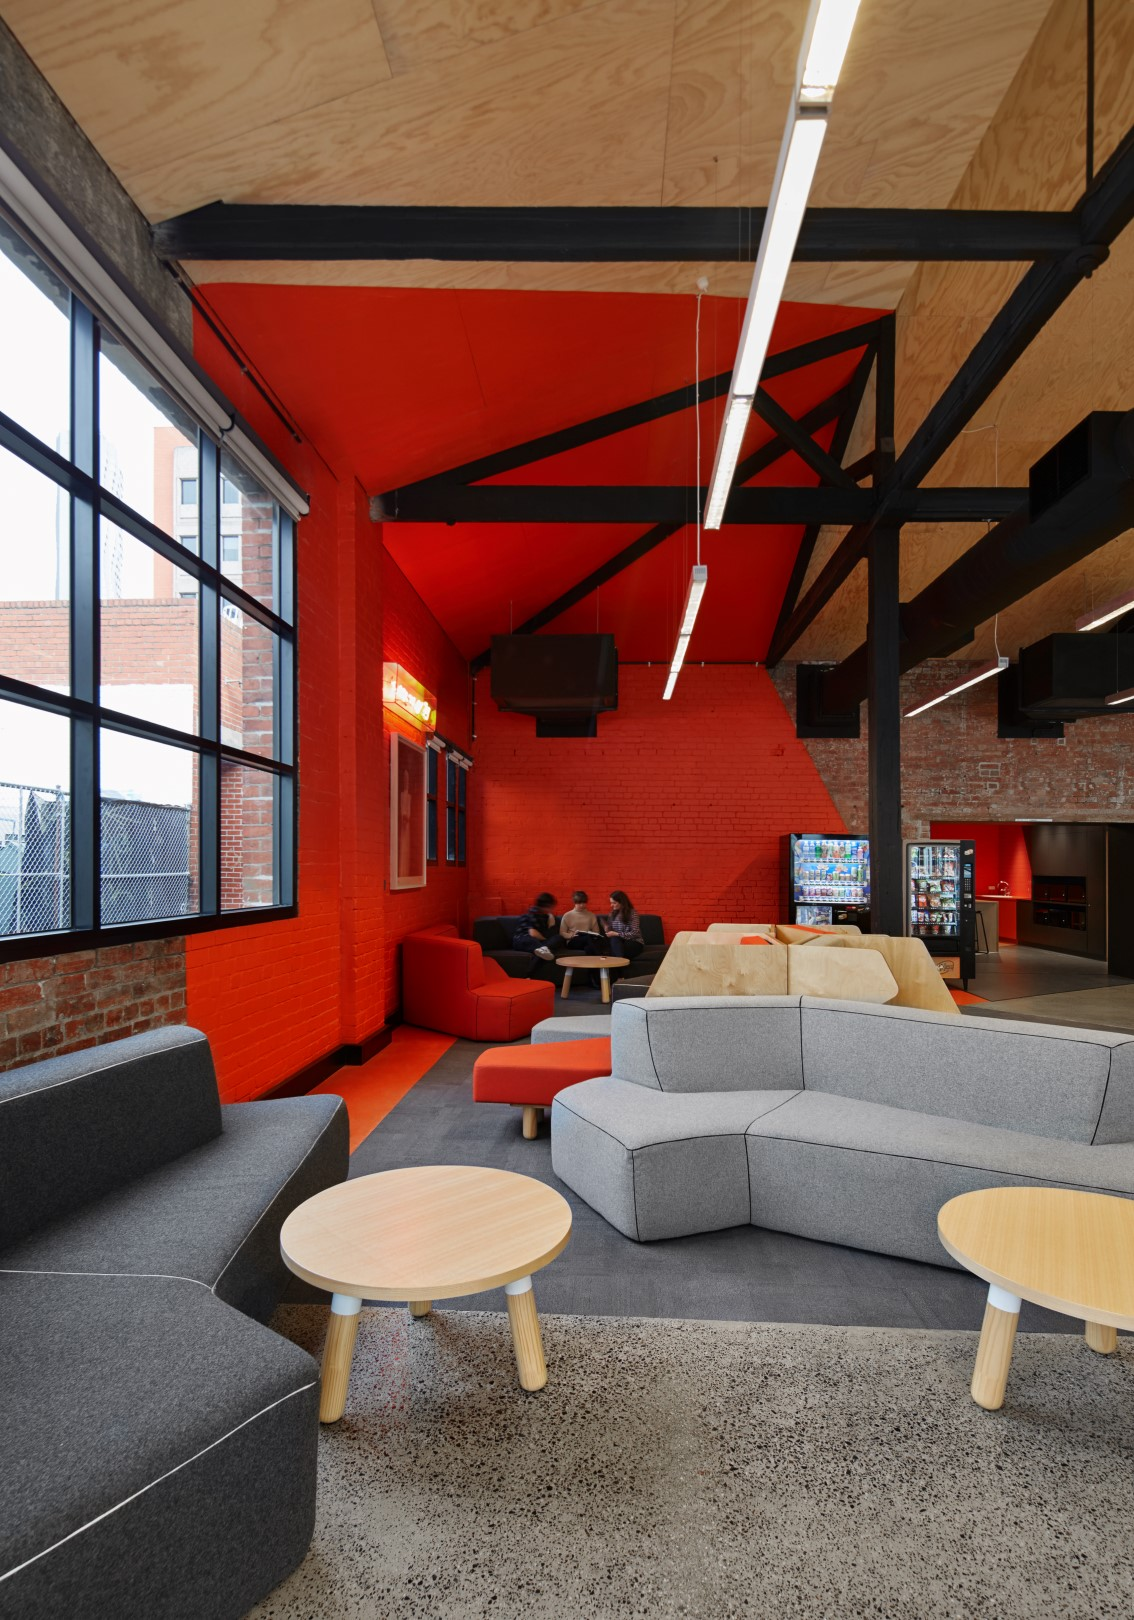 HINGE_RMIT Student Zone_Internal_Red Quadrant_Large.jpg